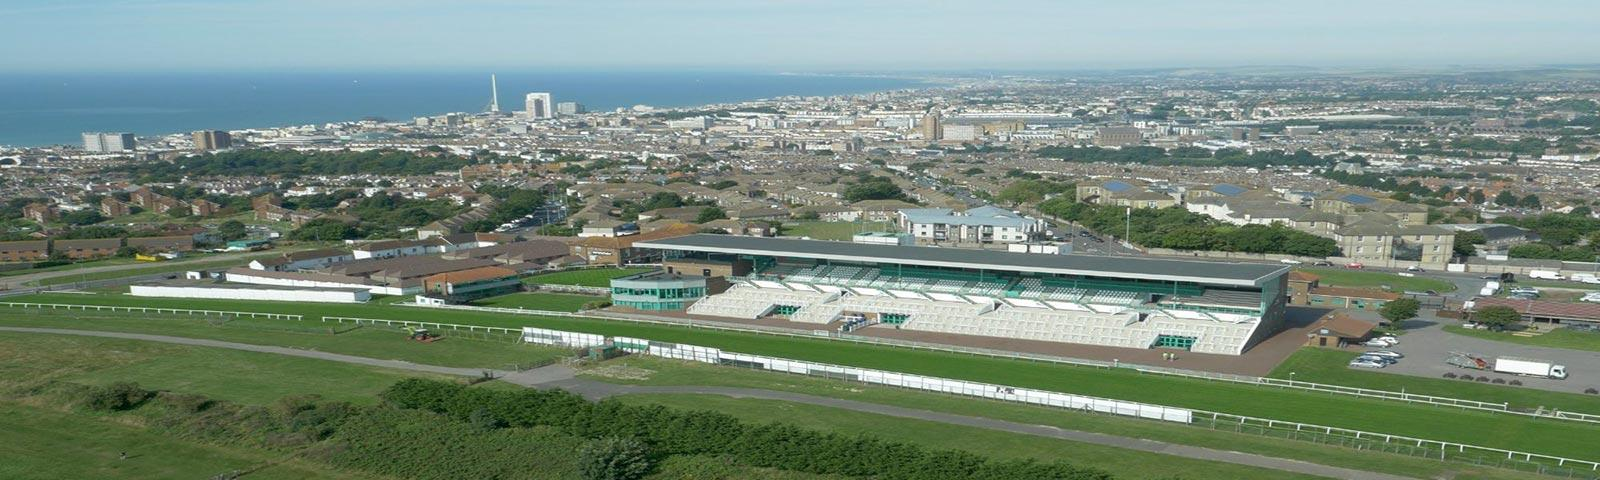 Brighton racecourse from the air with the coast in the background